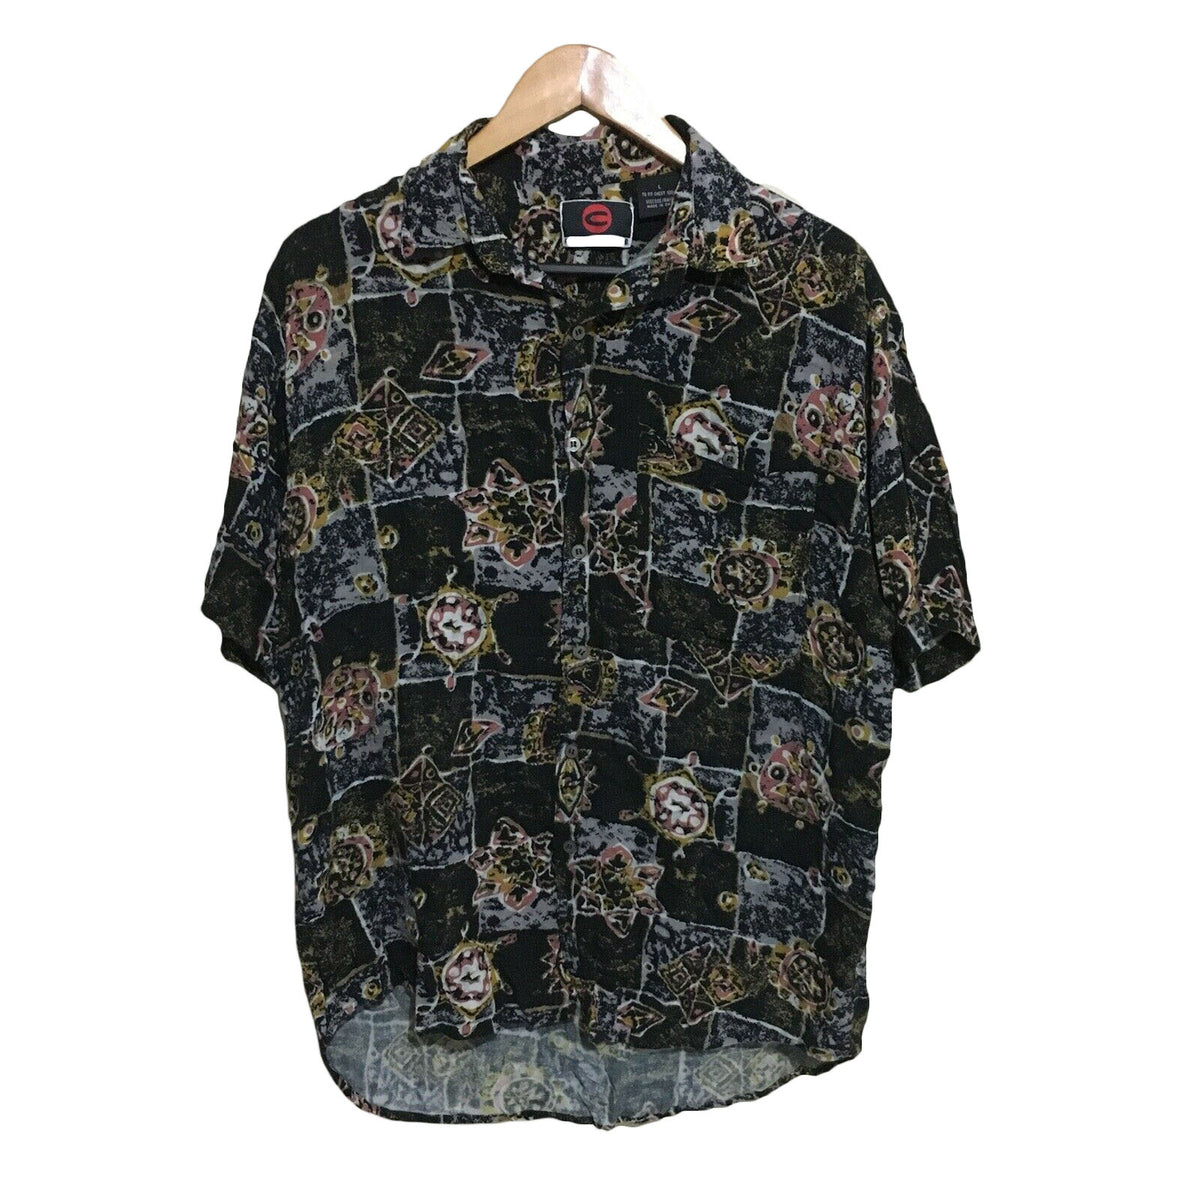 Club Abstract 1990's Vintage Button Shirt Mens Large